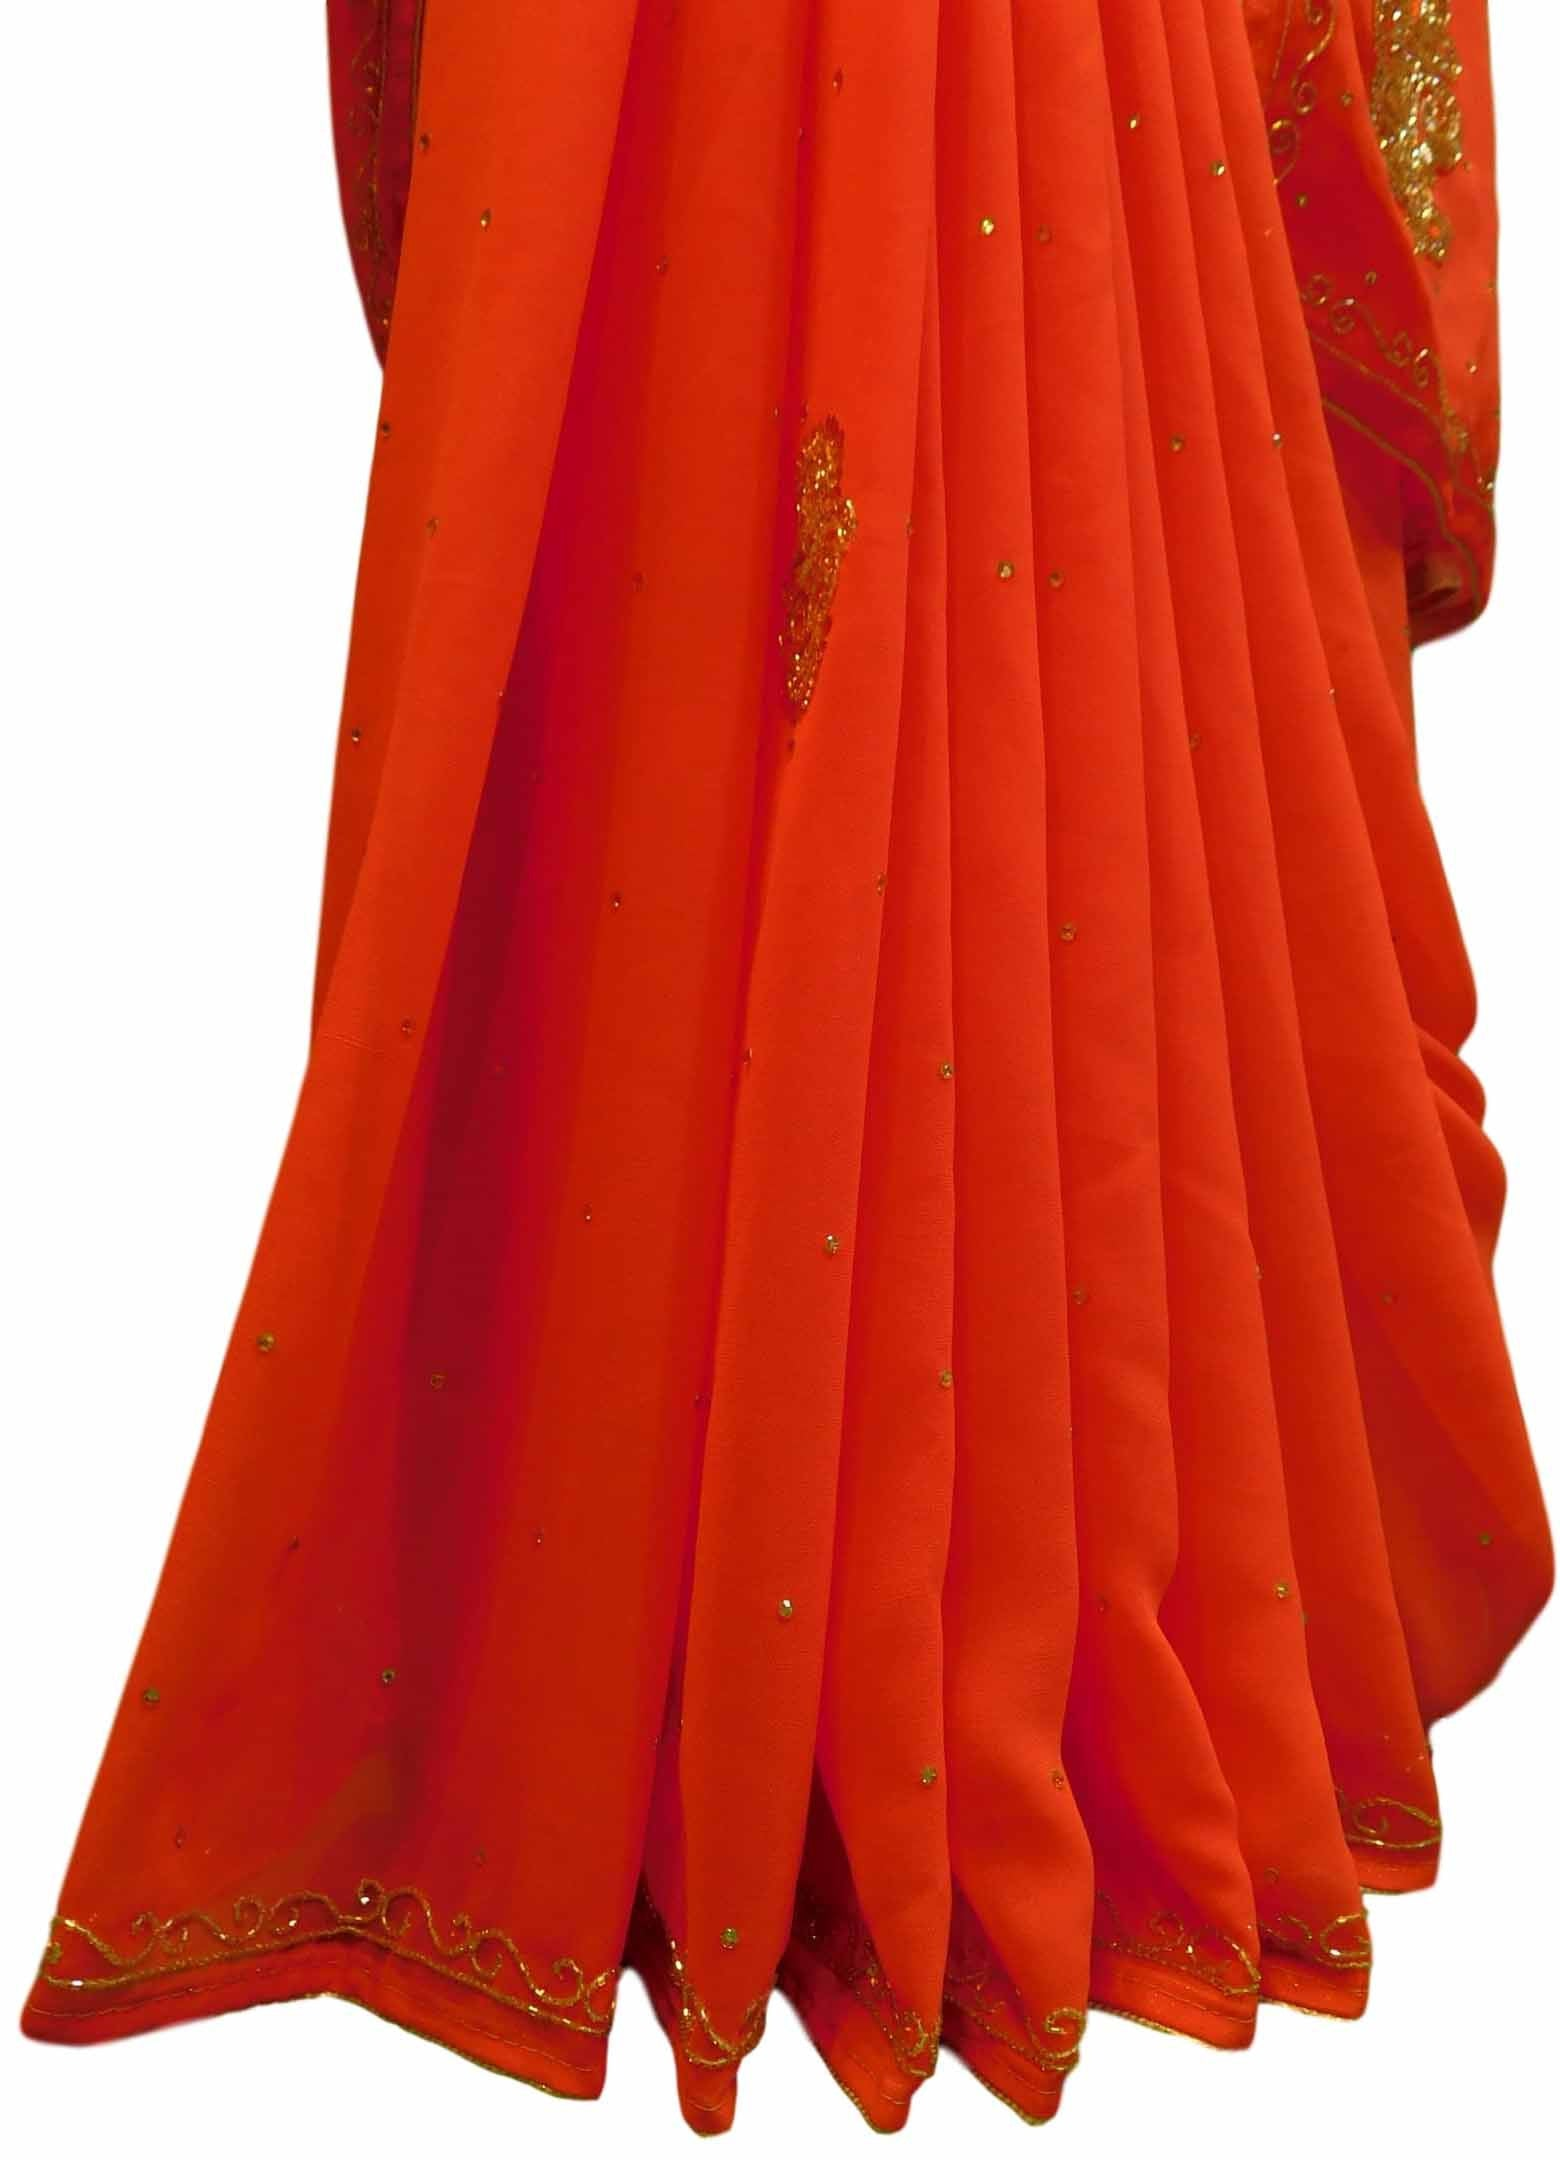 Gajari Designer Georgette Sari Zari, Cutdana Thread Embroidery Work Saree